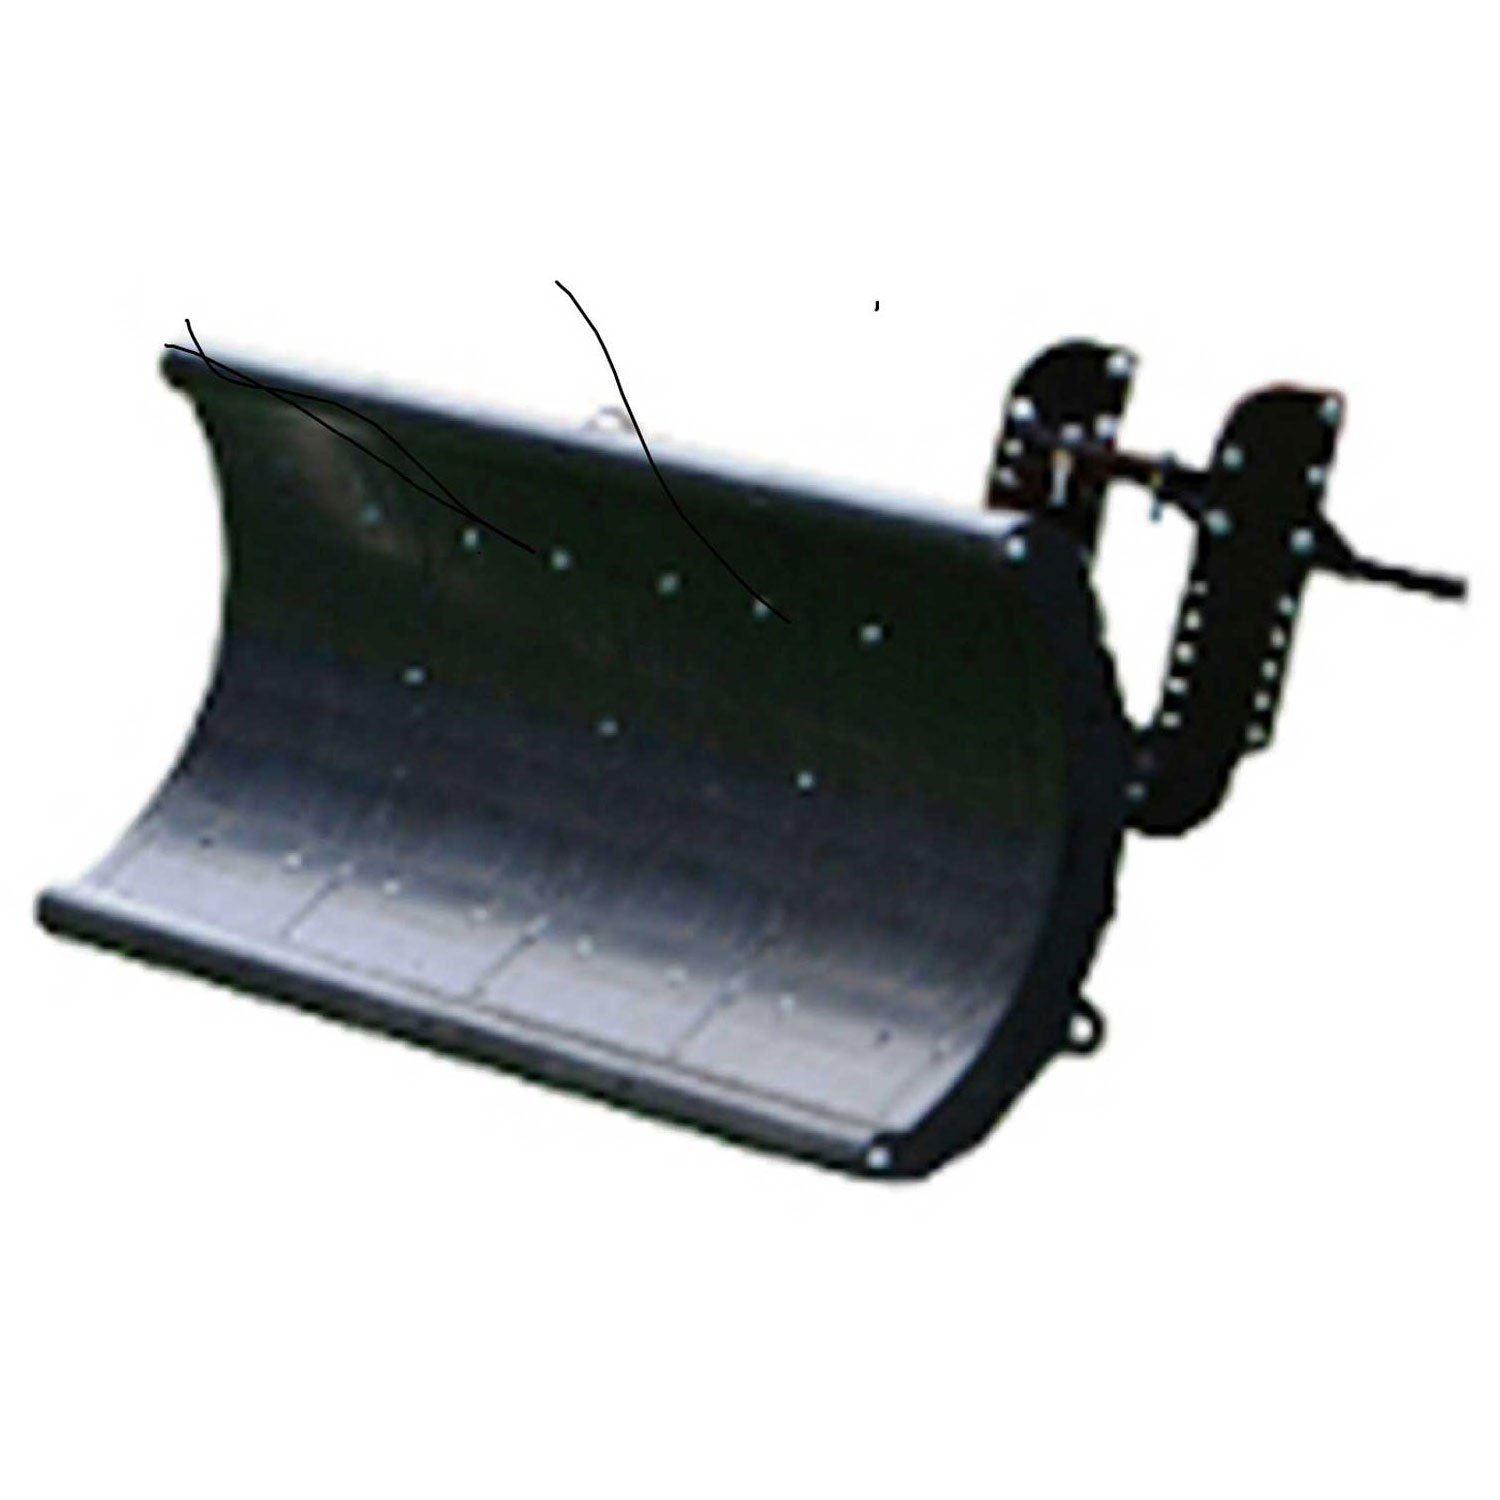 Nordic Auto Plow NAP-GC4 Lightweight Rounded Edge 64'' Snow Plow: Club Car Golf Carts by Nordic Auto Plow LLC